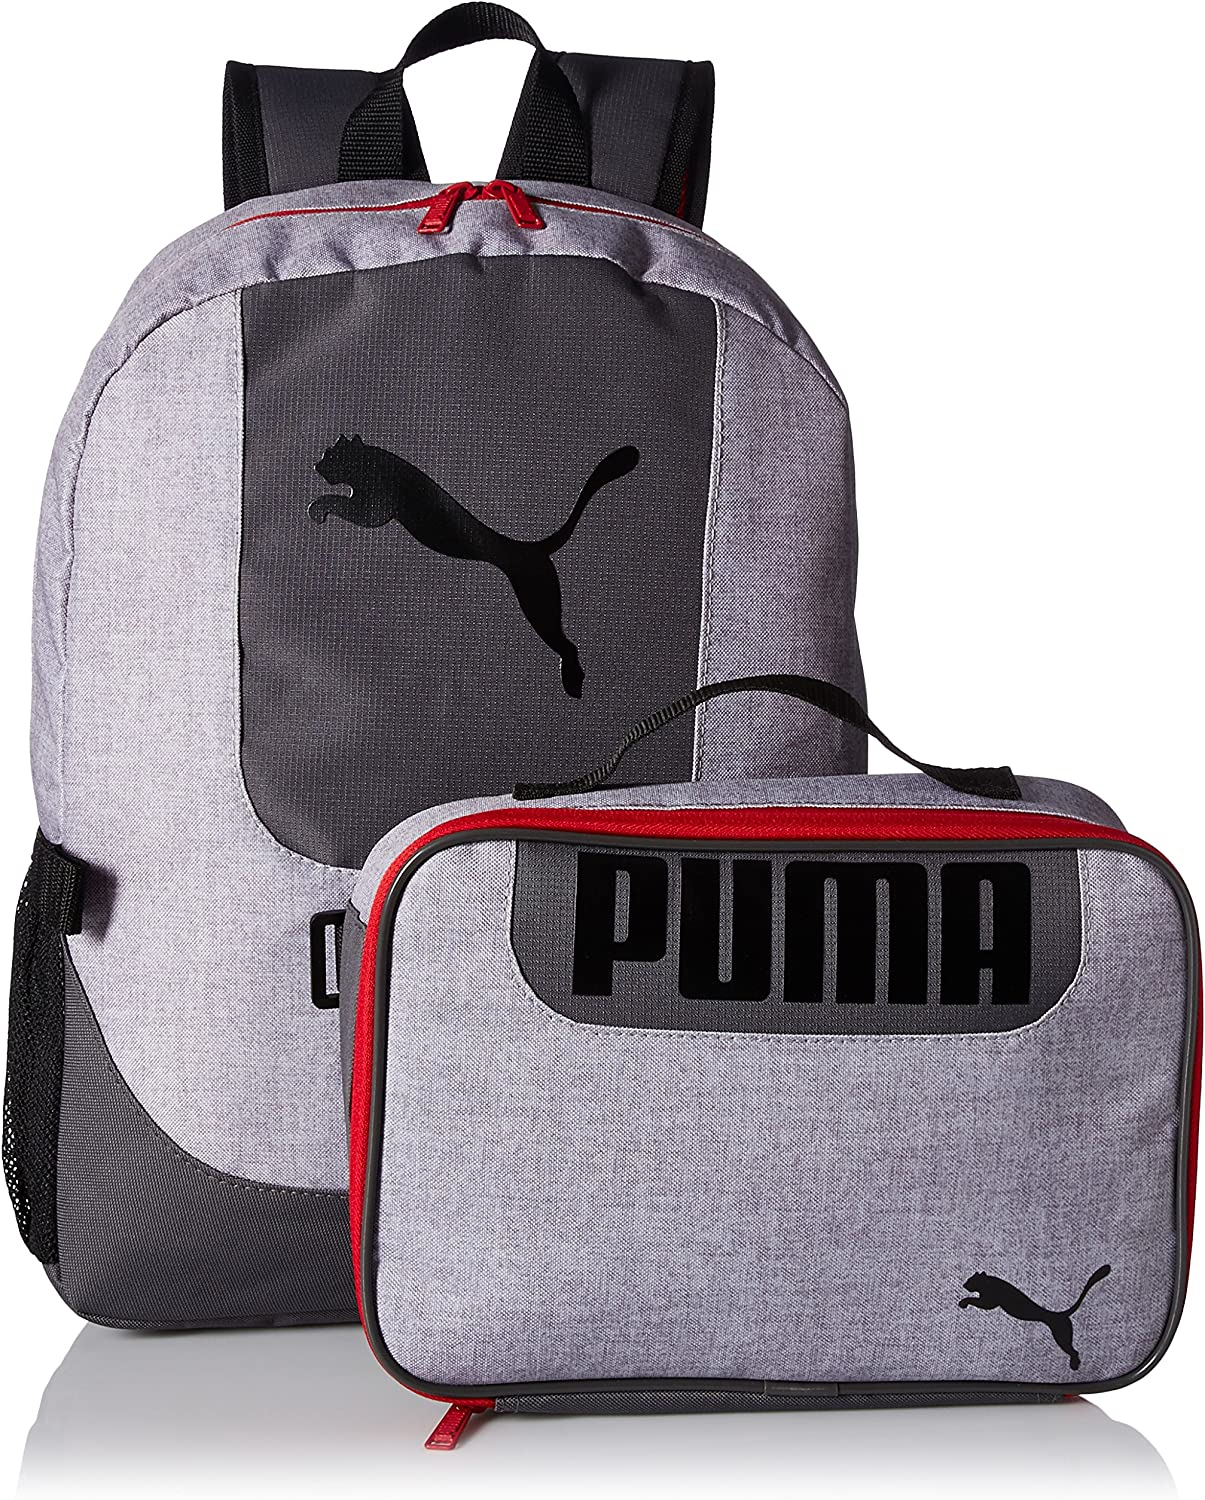 PUMA Kids' Lunch Box Backpack Combo